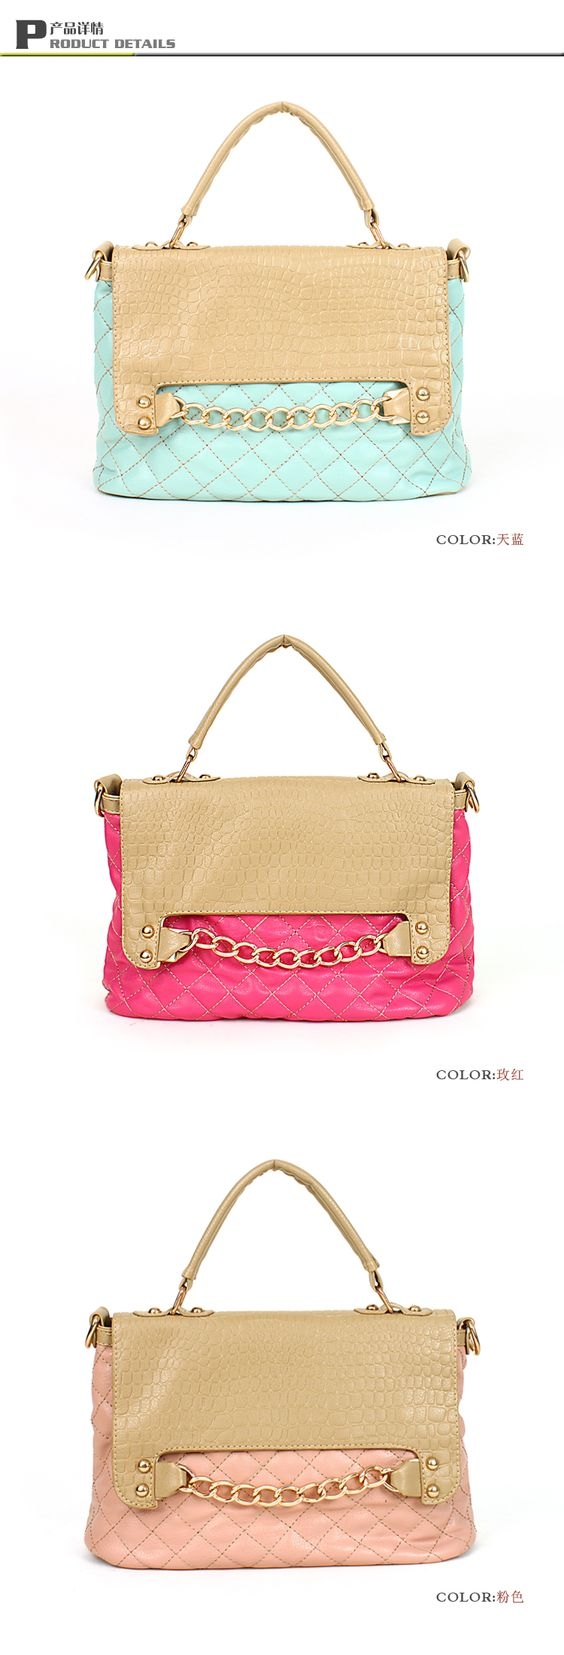 $7.50 @ bag-wholesale.net